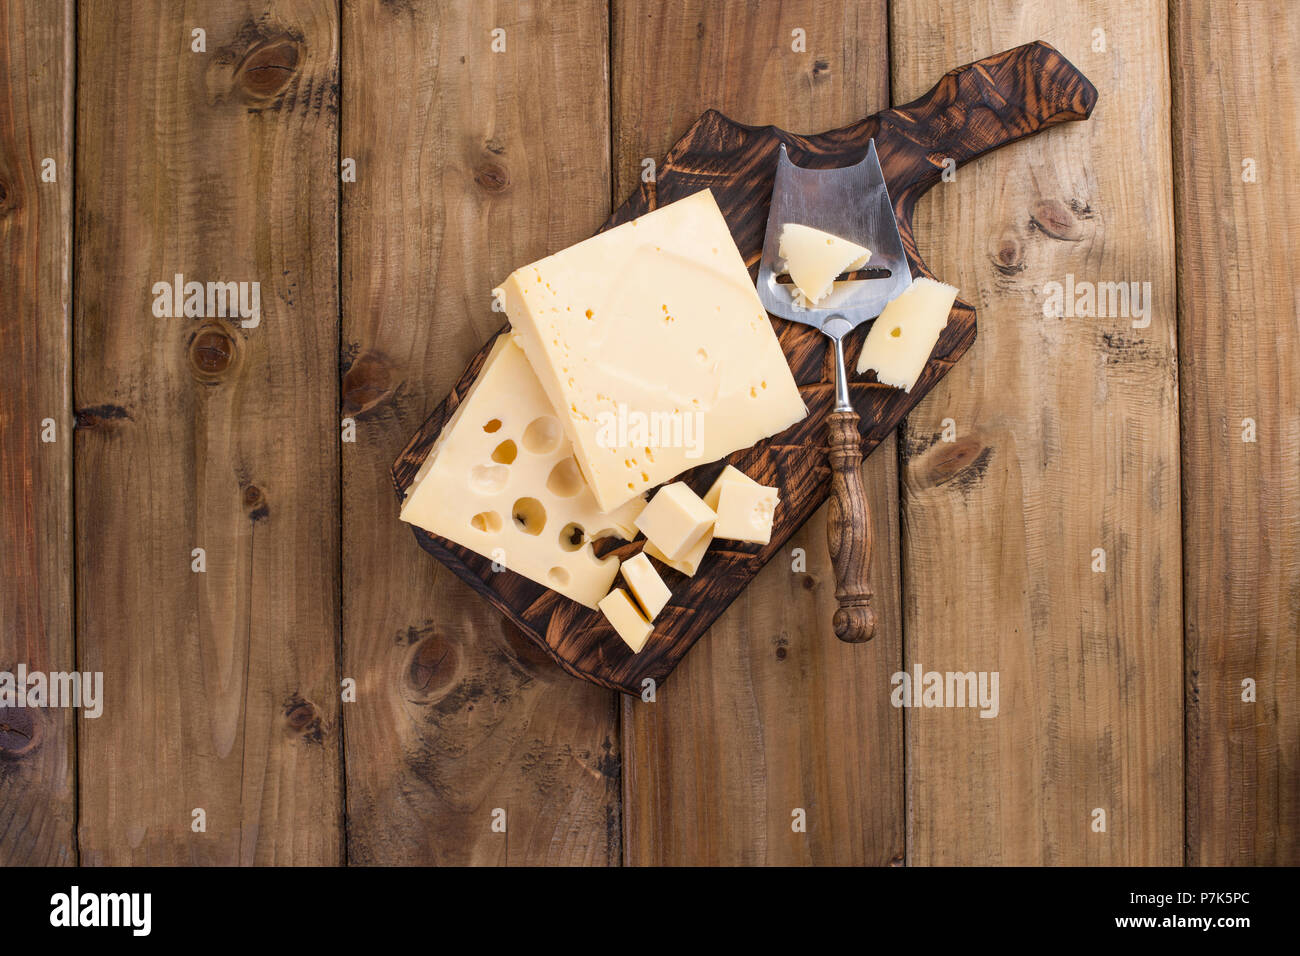 Traditional Dutch cheese with holes, on a vintage wooden board, wooden background and knife for cheese. Dairy. Copy space - Stock Image